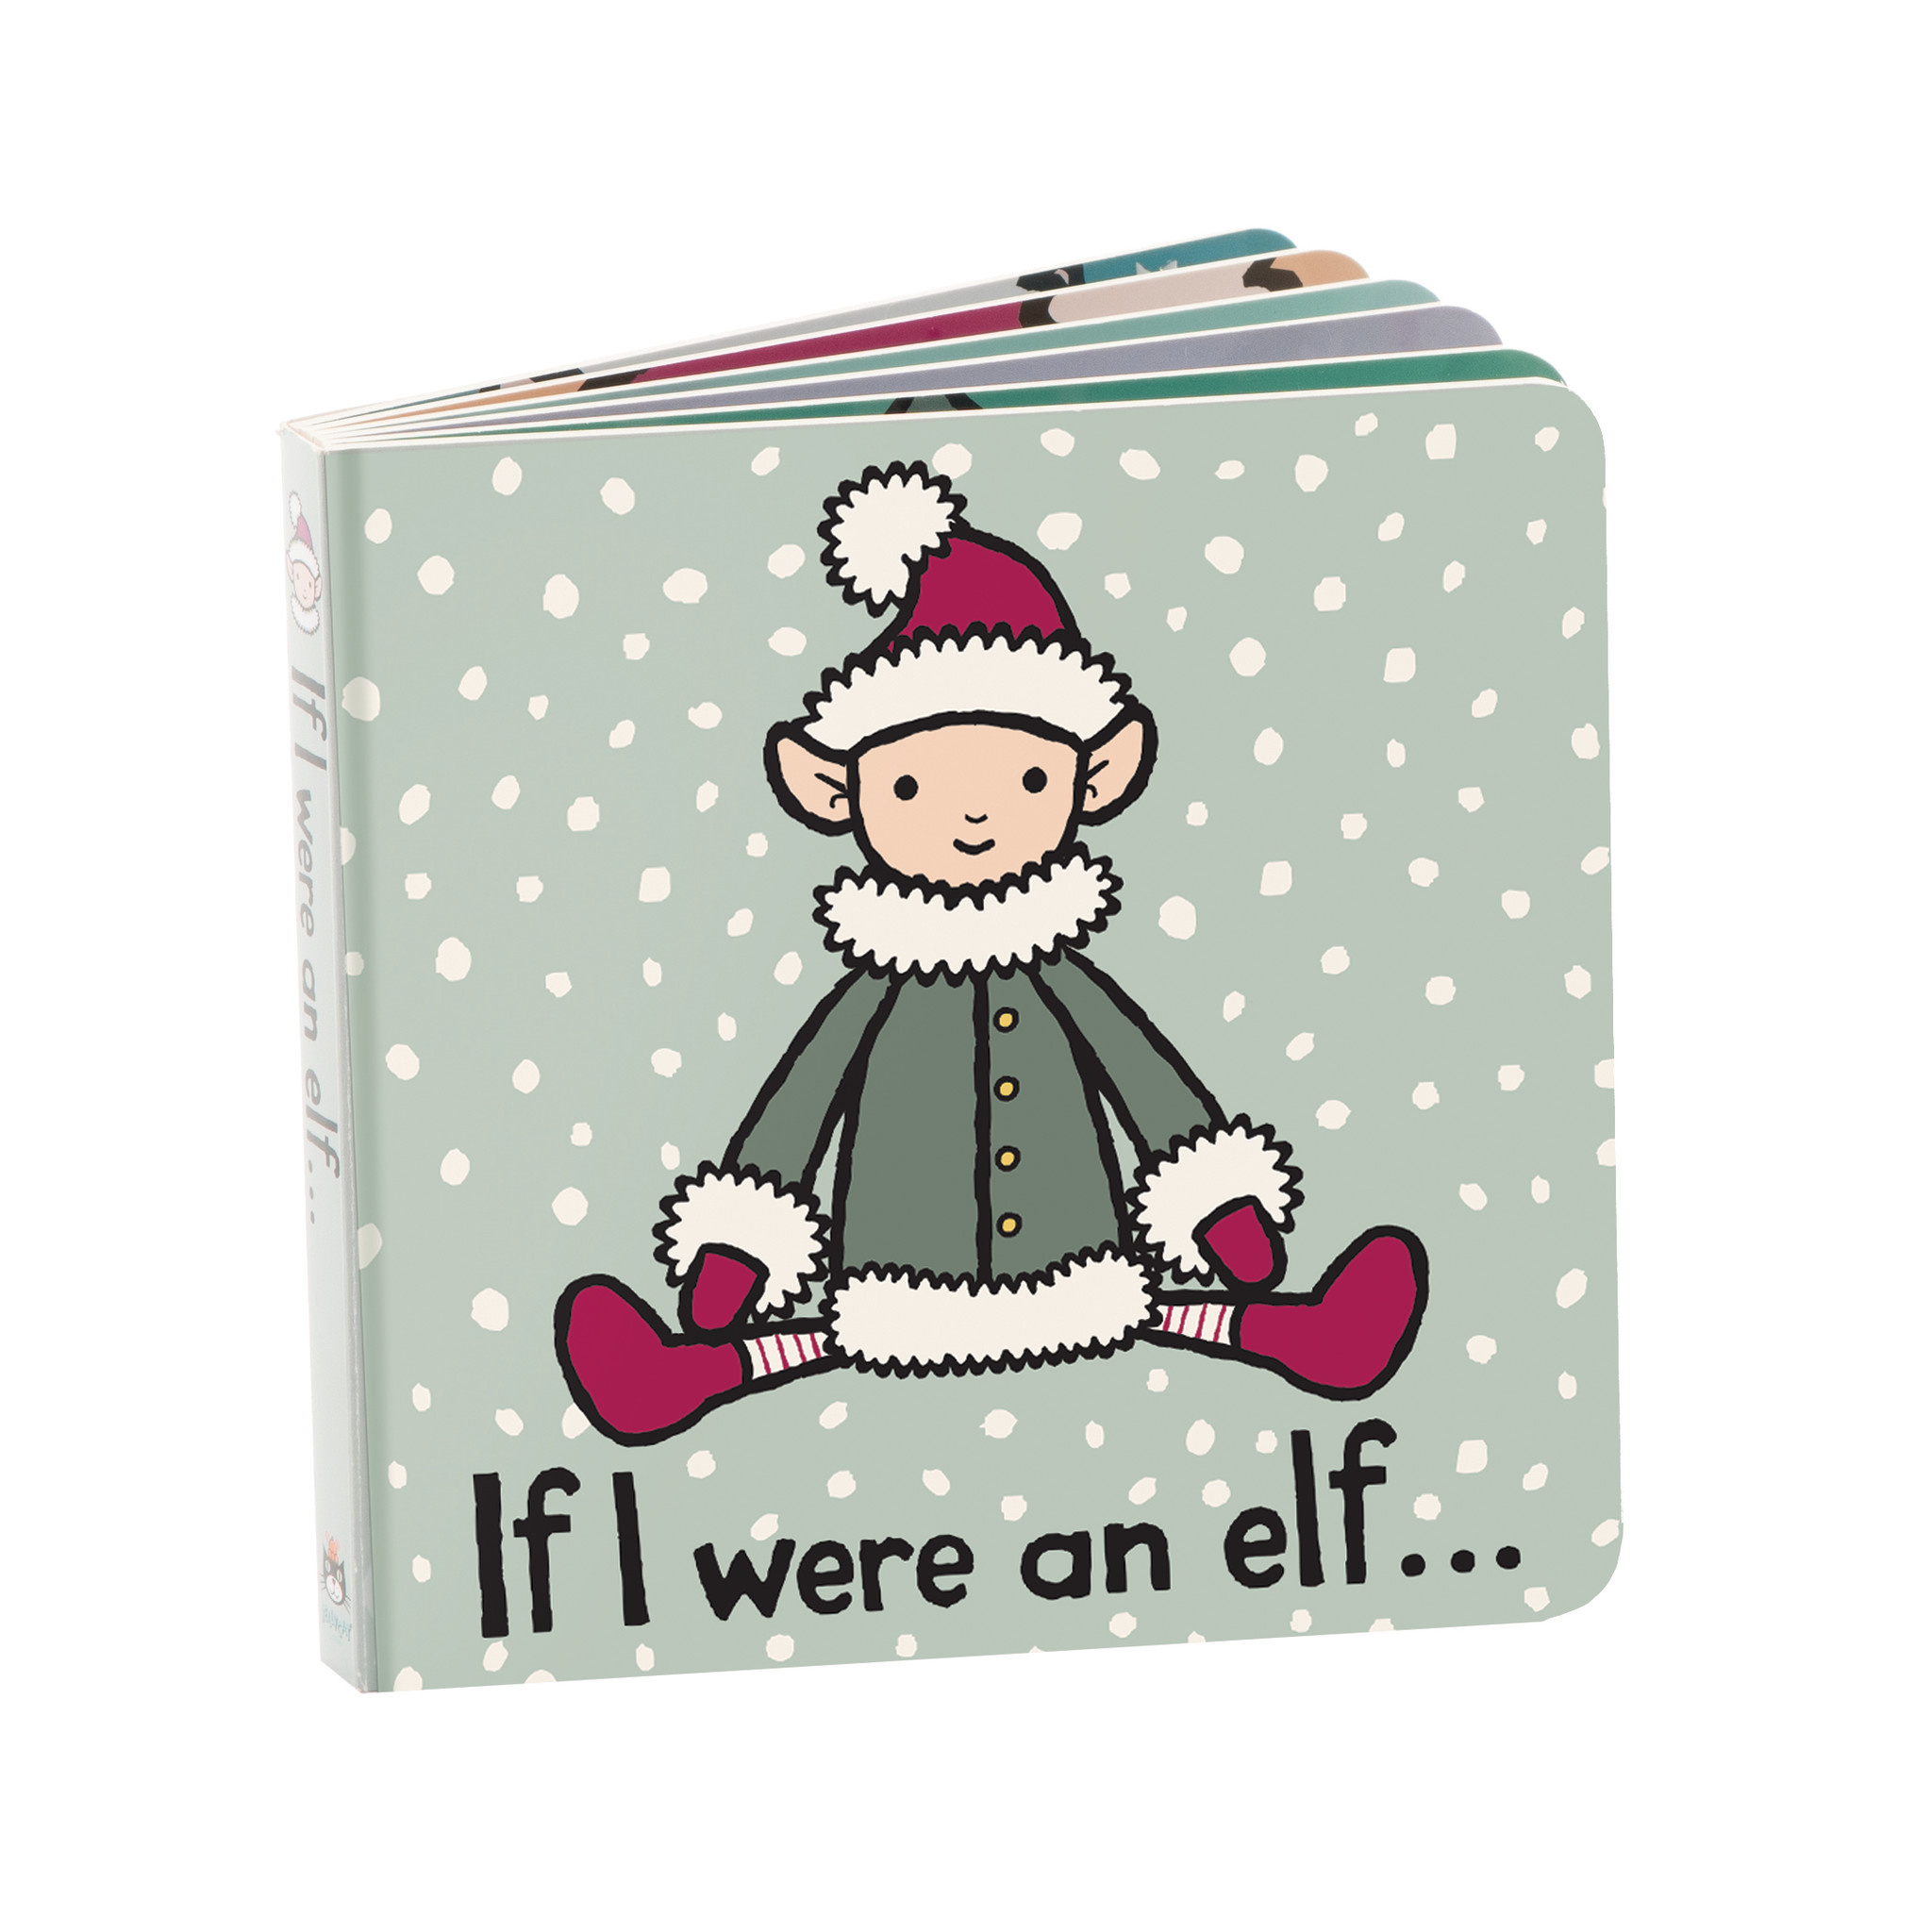 Jellycat If I were an Elf